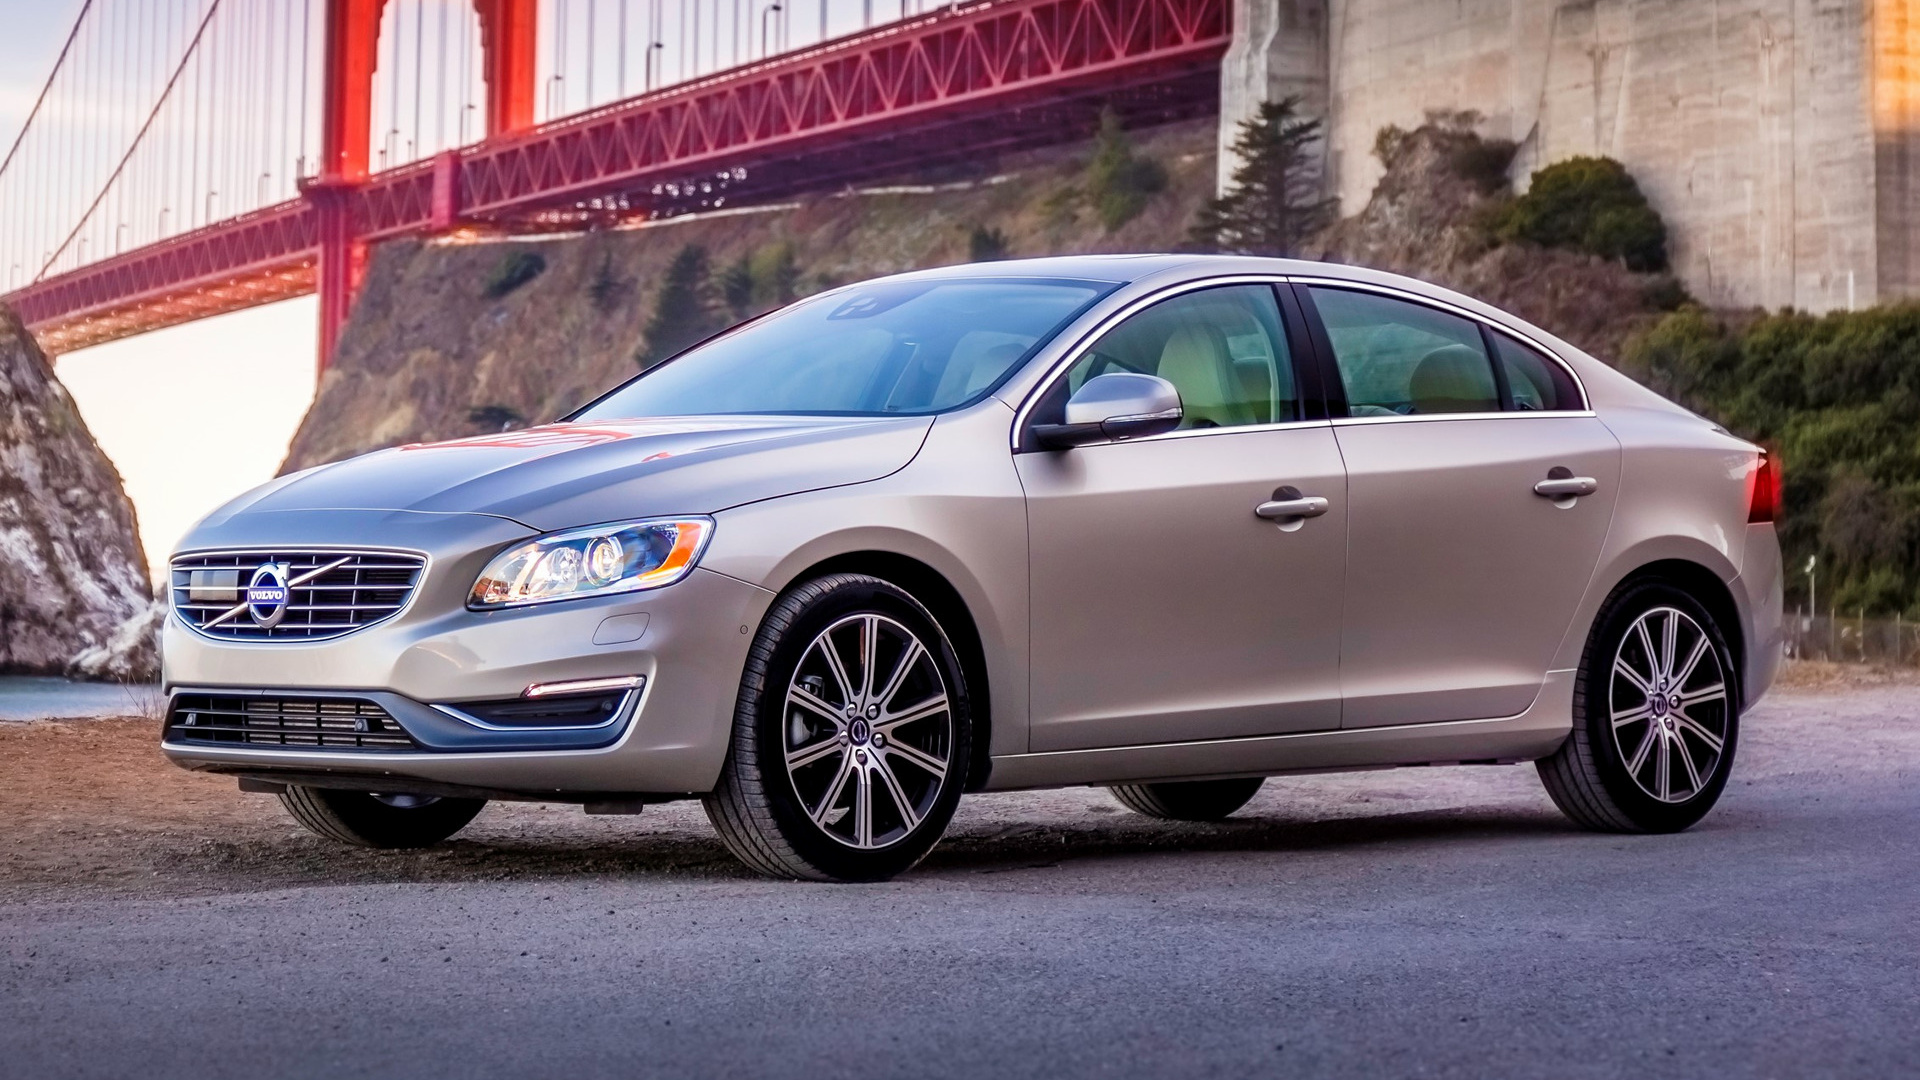 Volvo S60 Inscription (2016) US Wallpapers and HD Images - Car Pixel